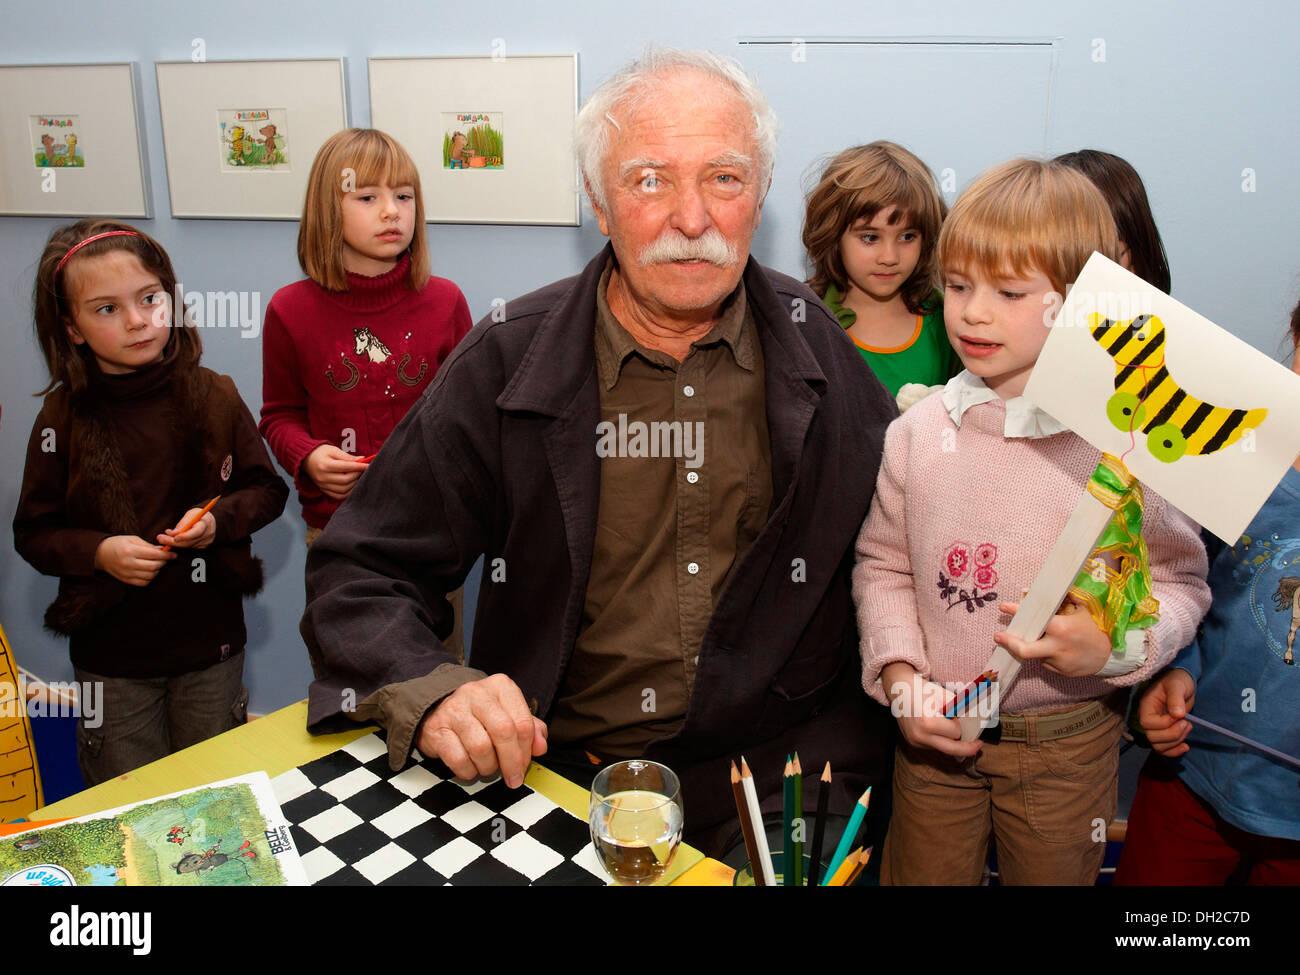 The illustrator, children's book author and writer Janosch aka Horst Eckert at the opening of his exhibition at the Ludwig - Stock Image